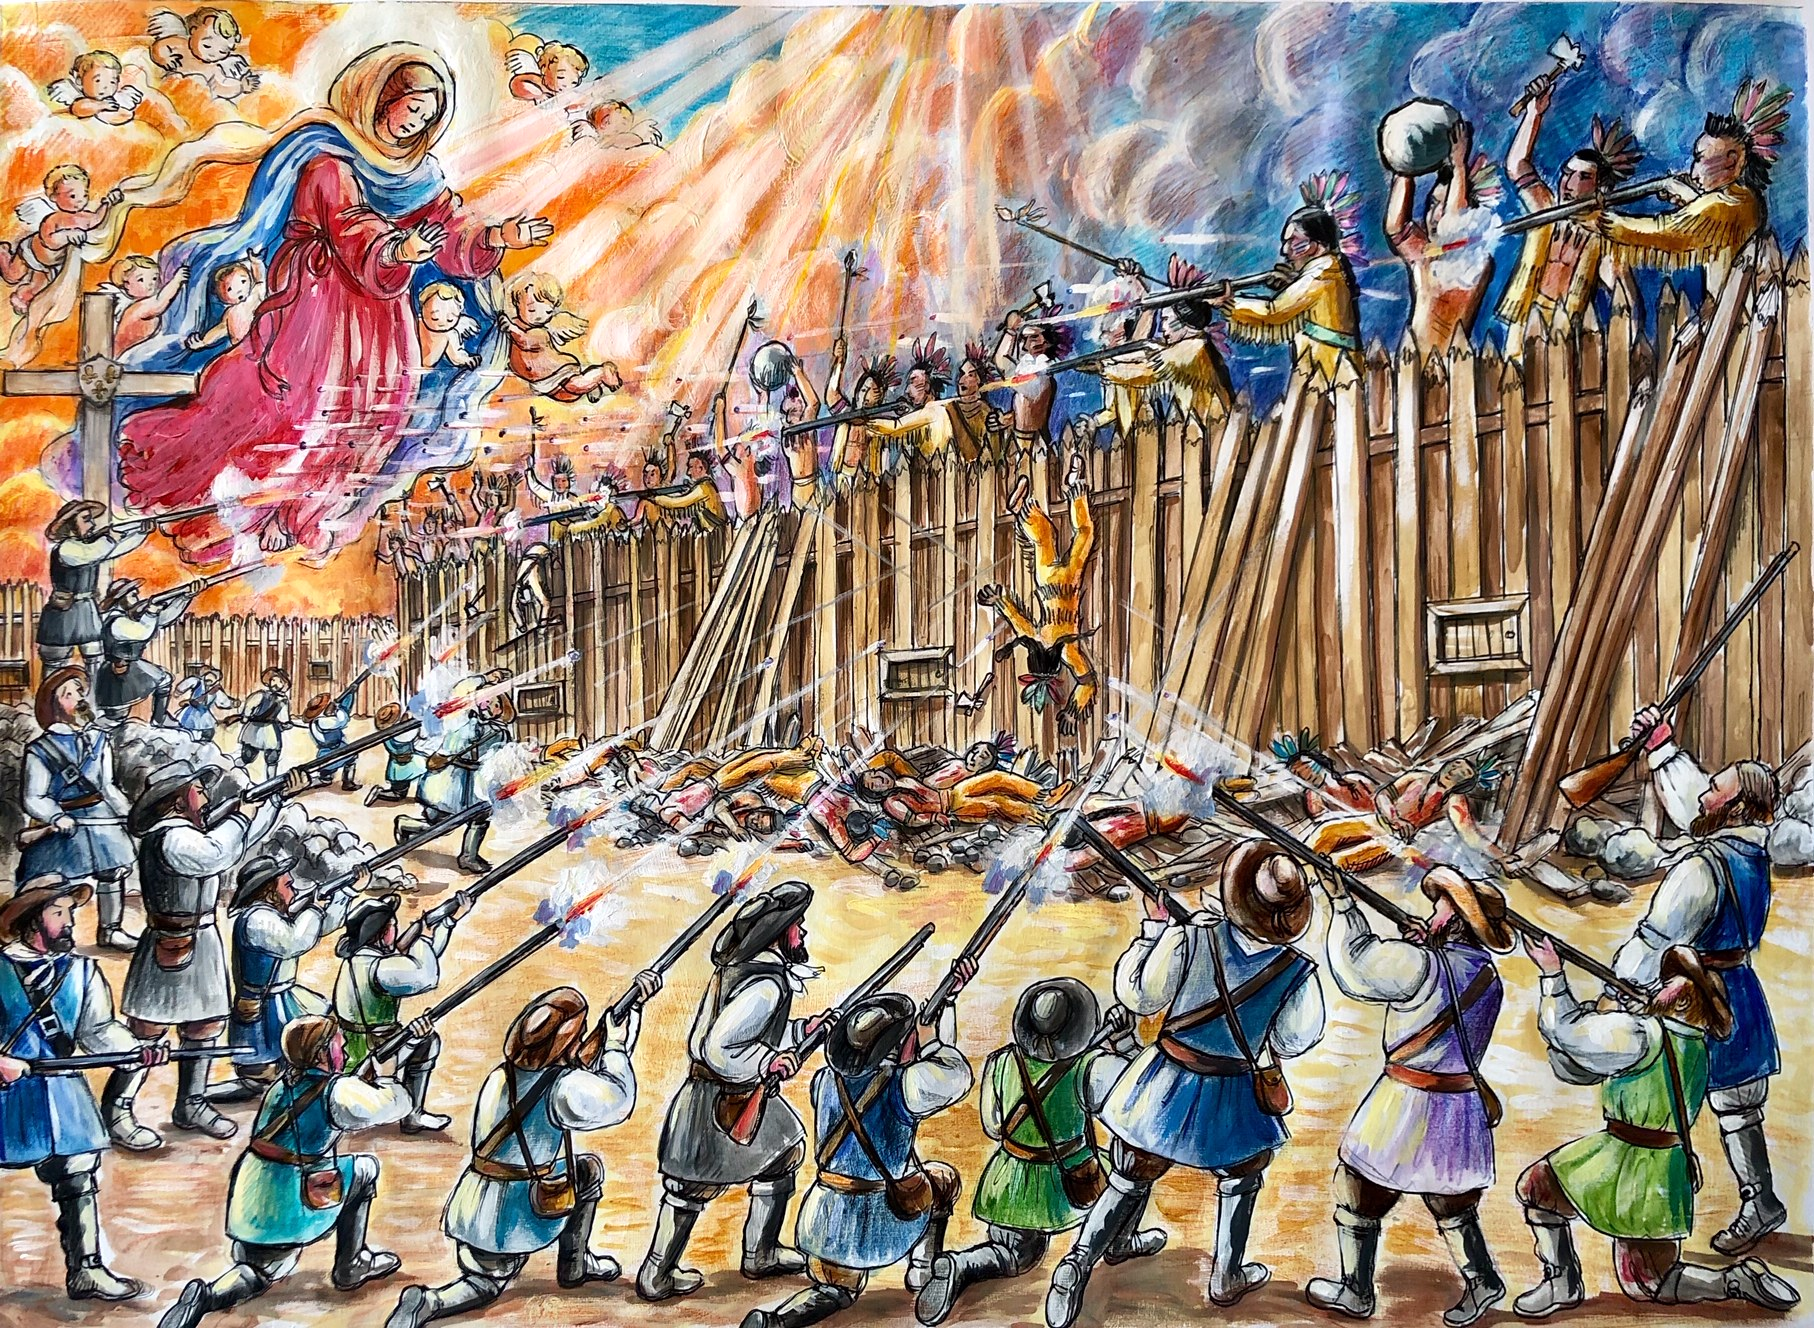 The Virgin Mary pushed the bullets away Image